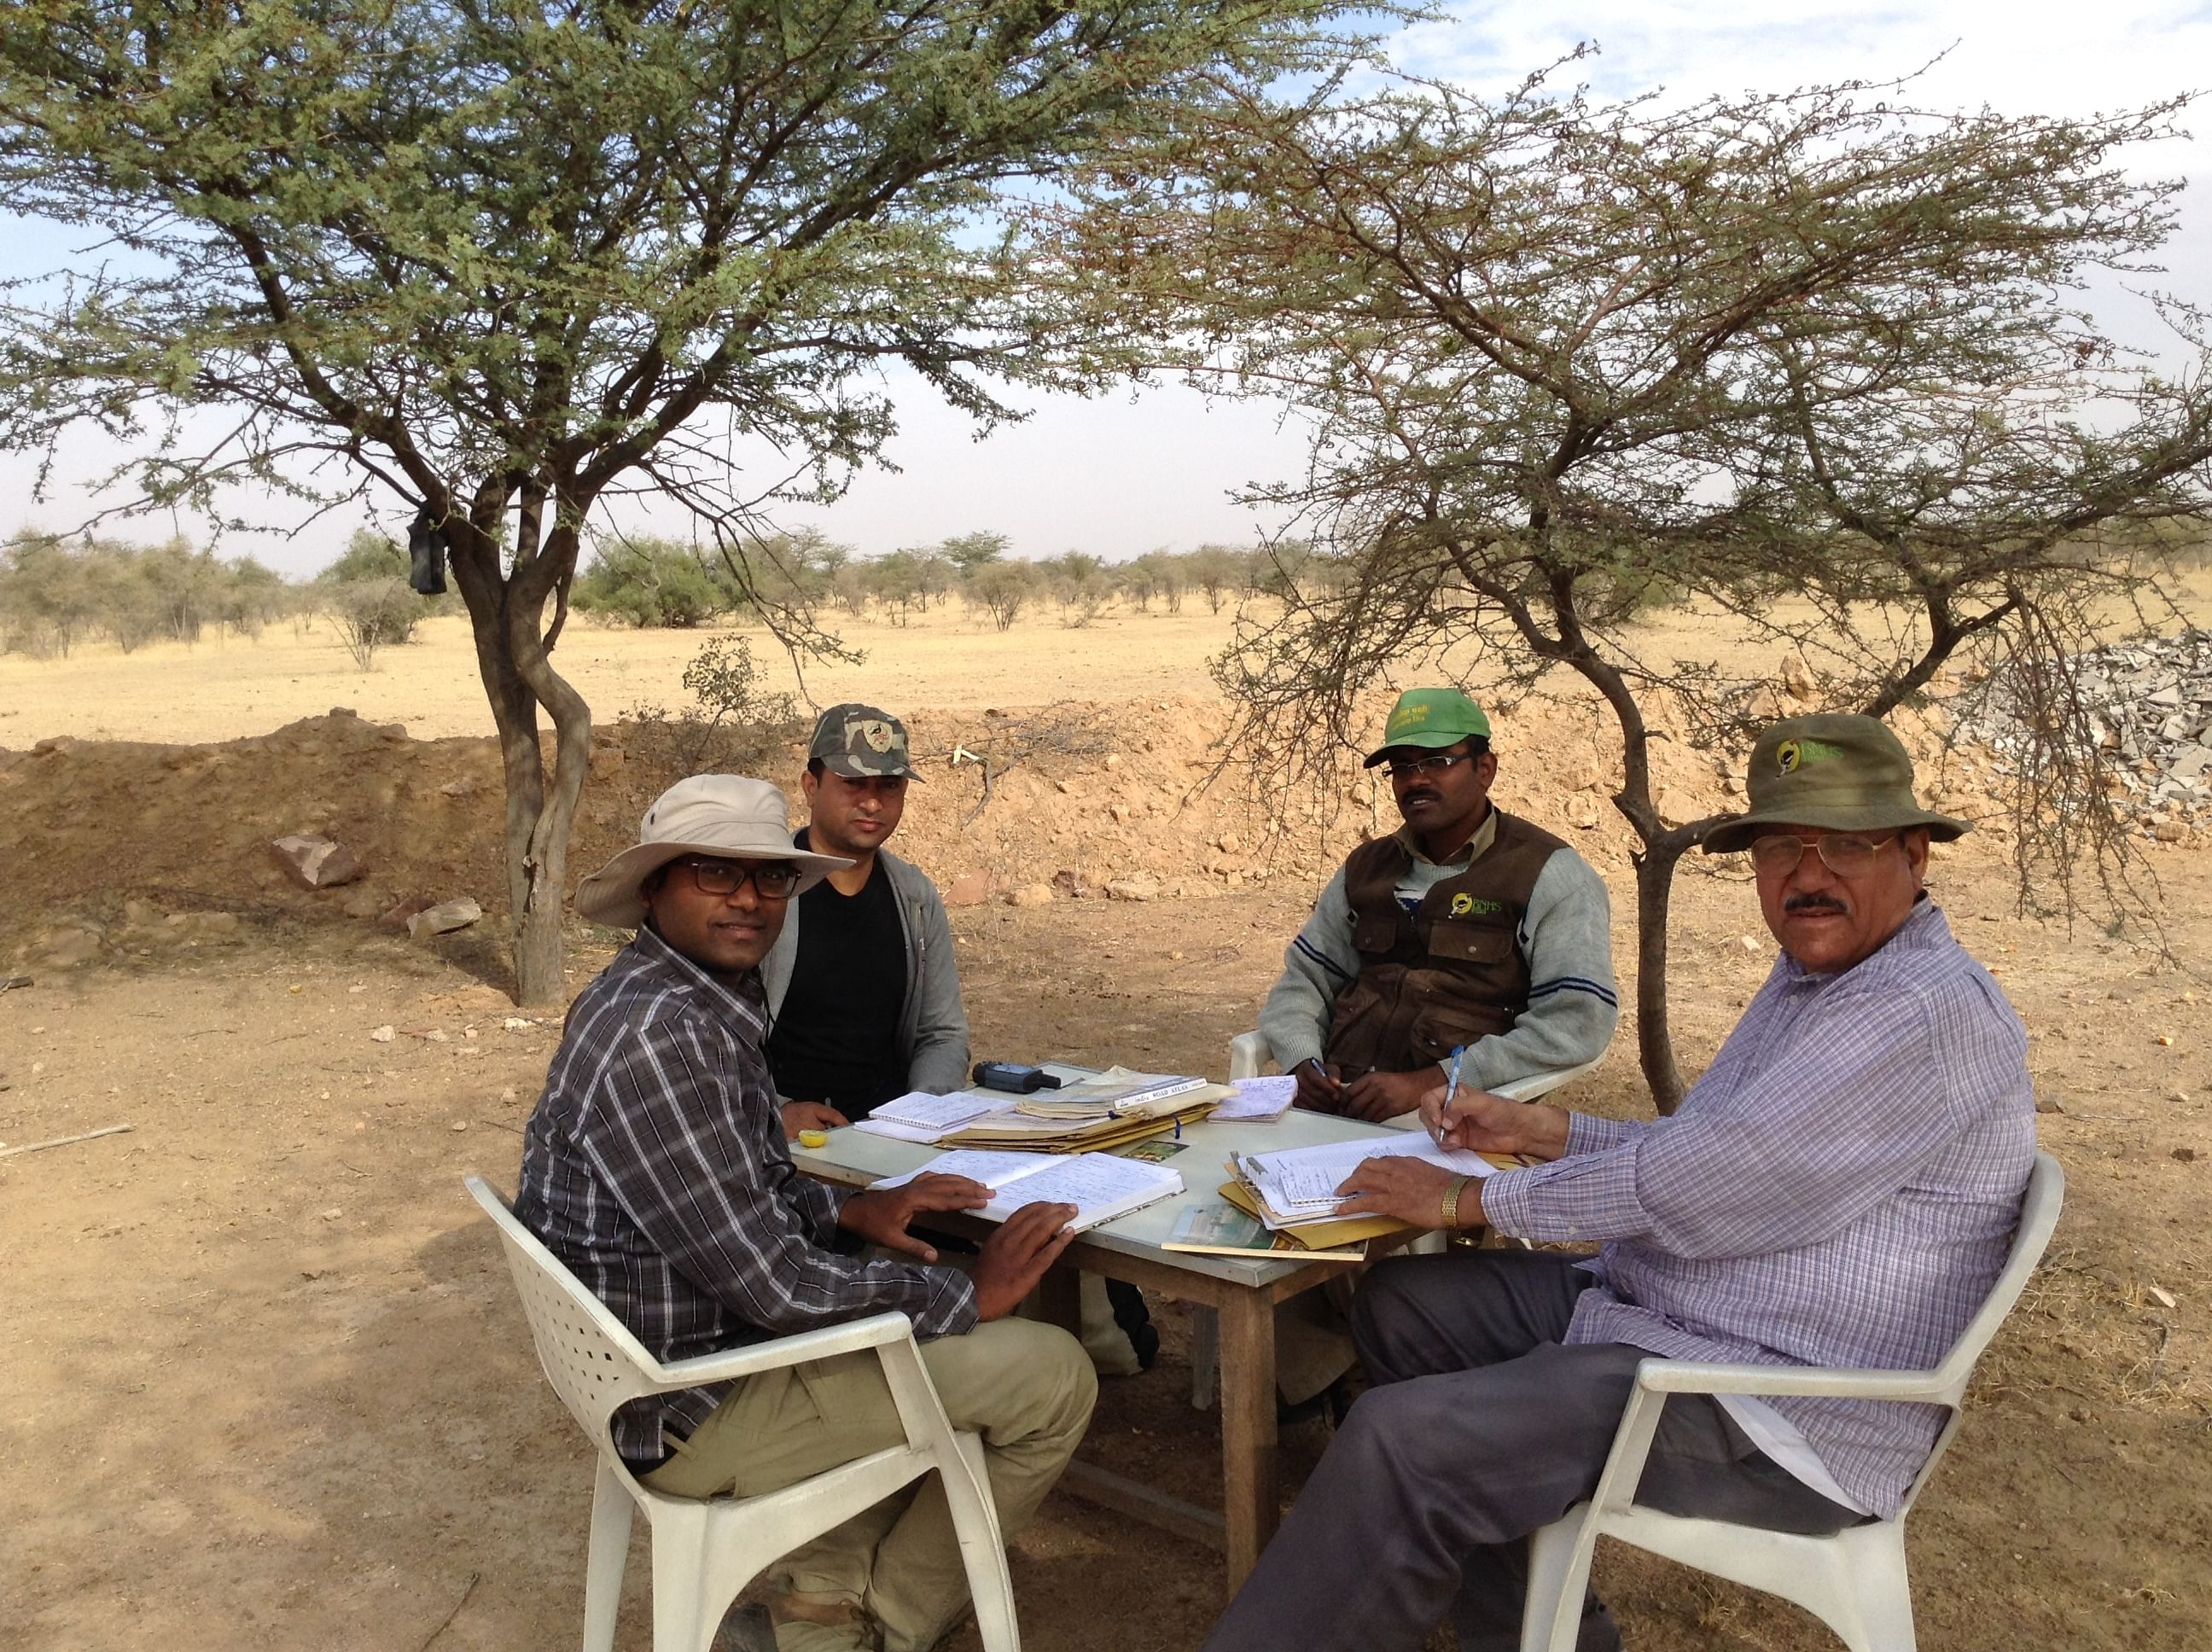 Dr. Patil (first from left) in the field with his colleagues